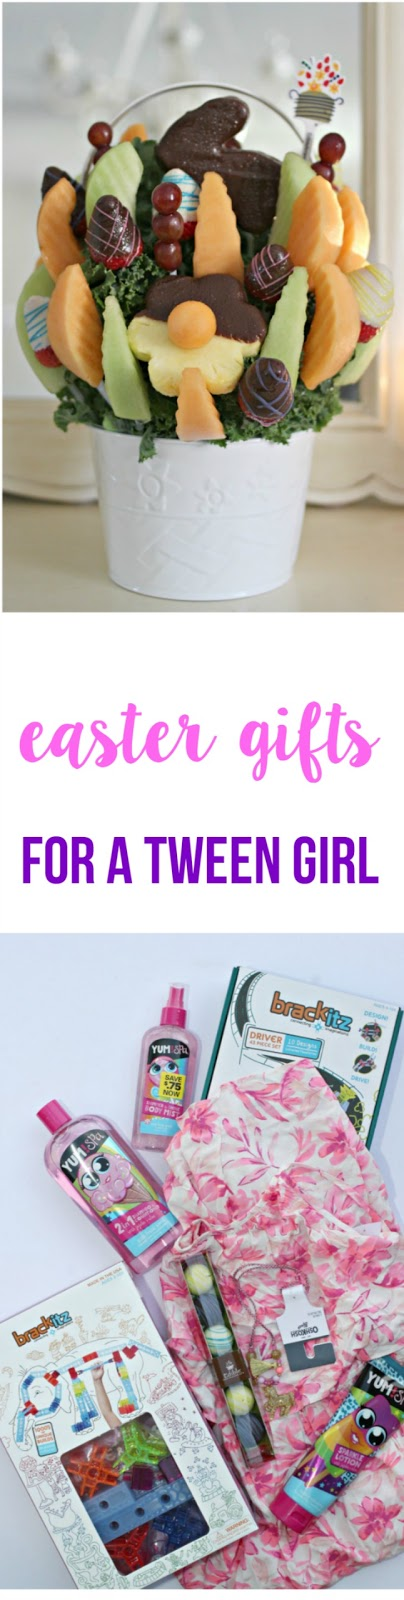 Easter Gifts For a Tween Girl